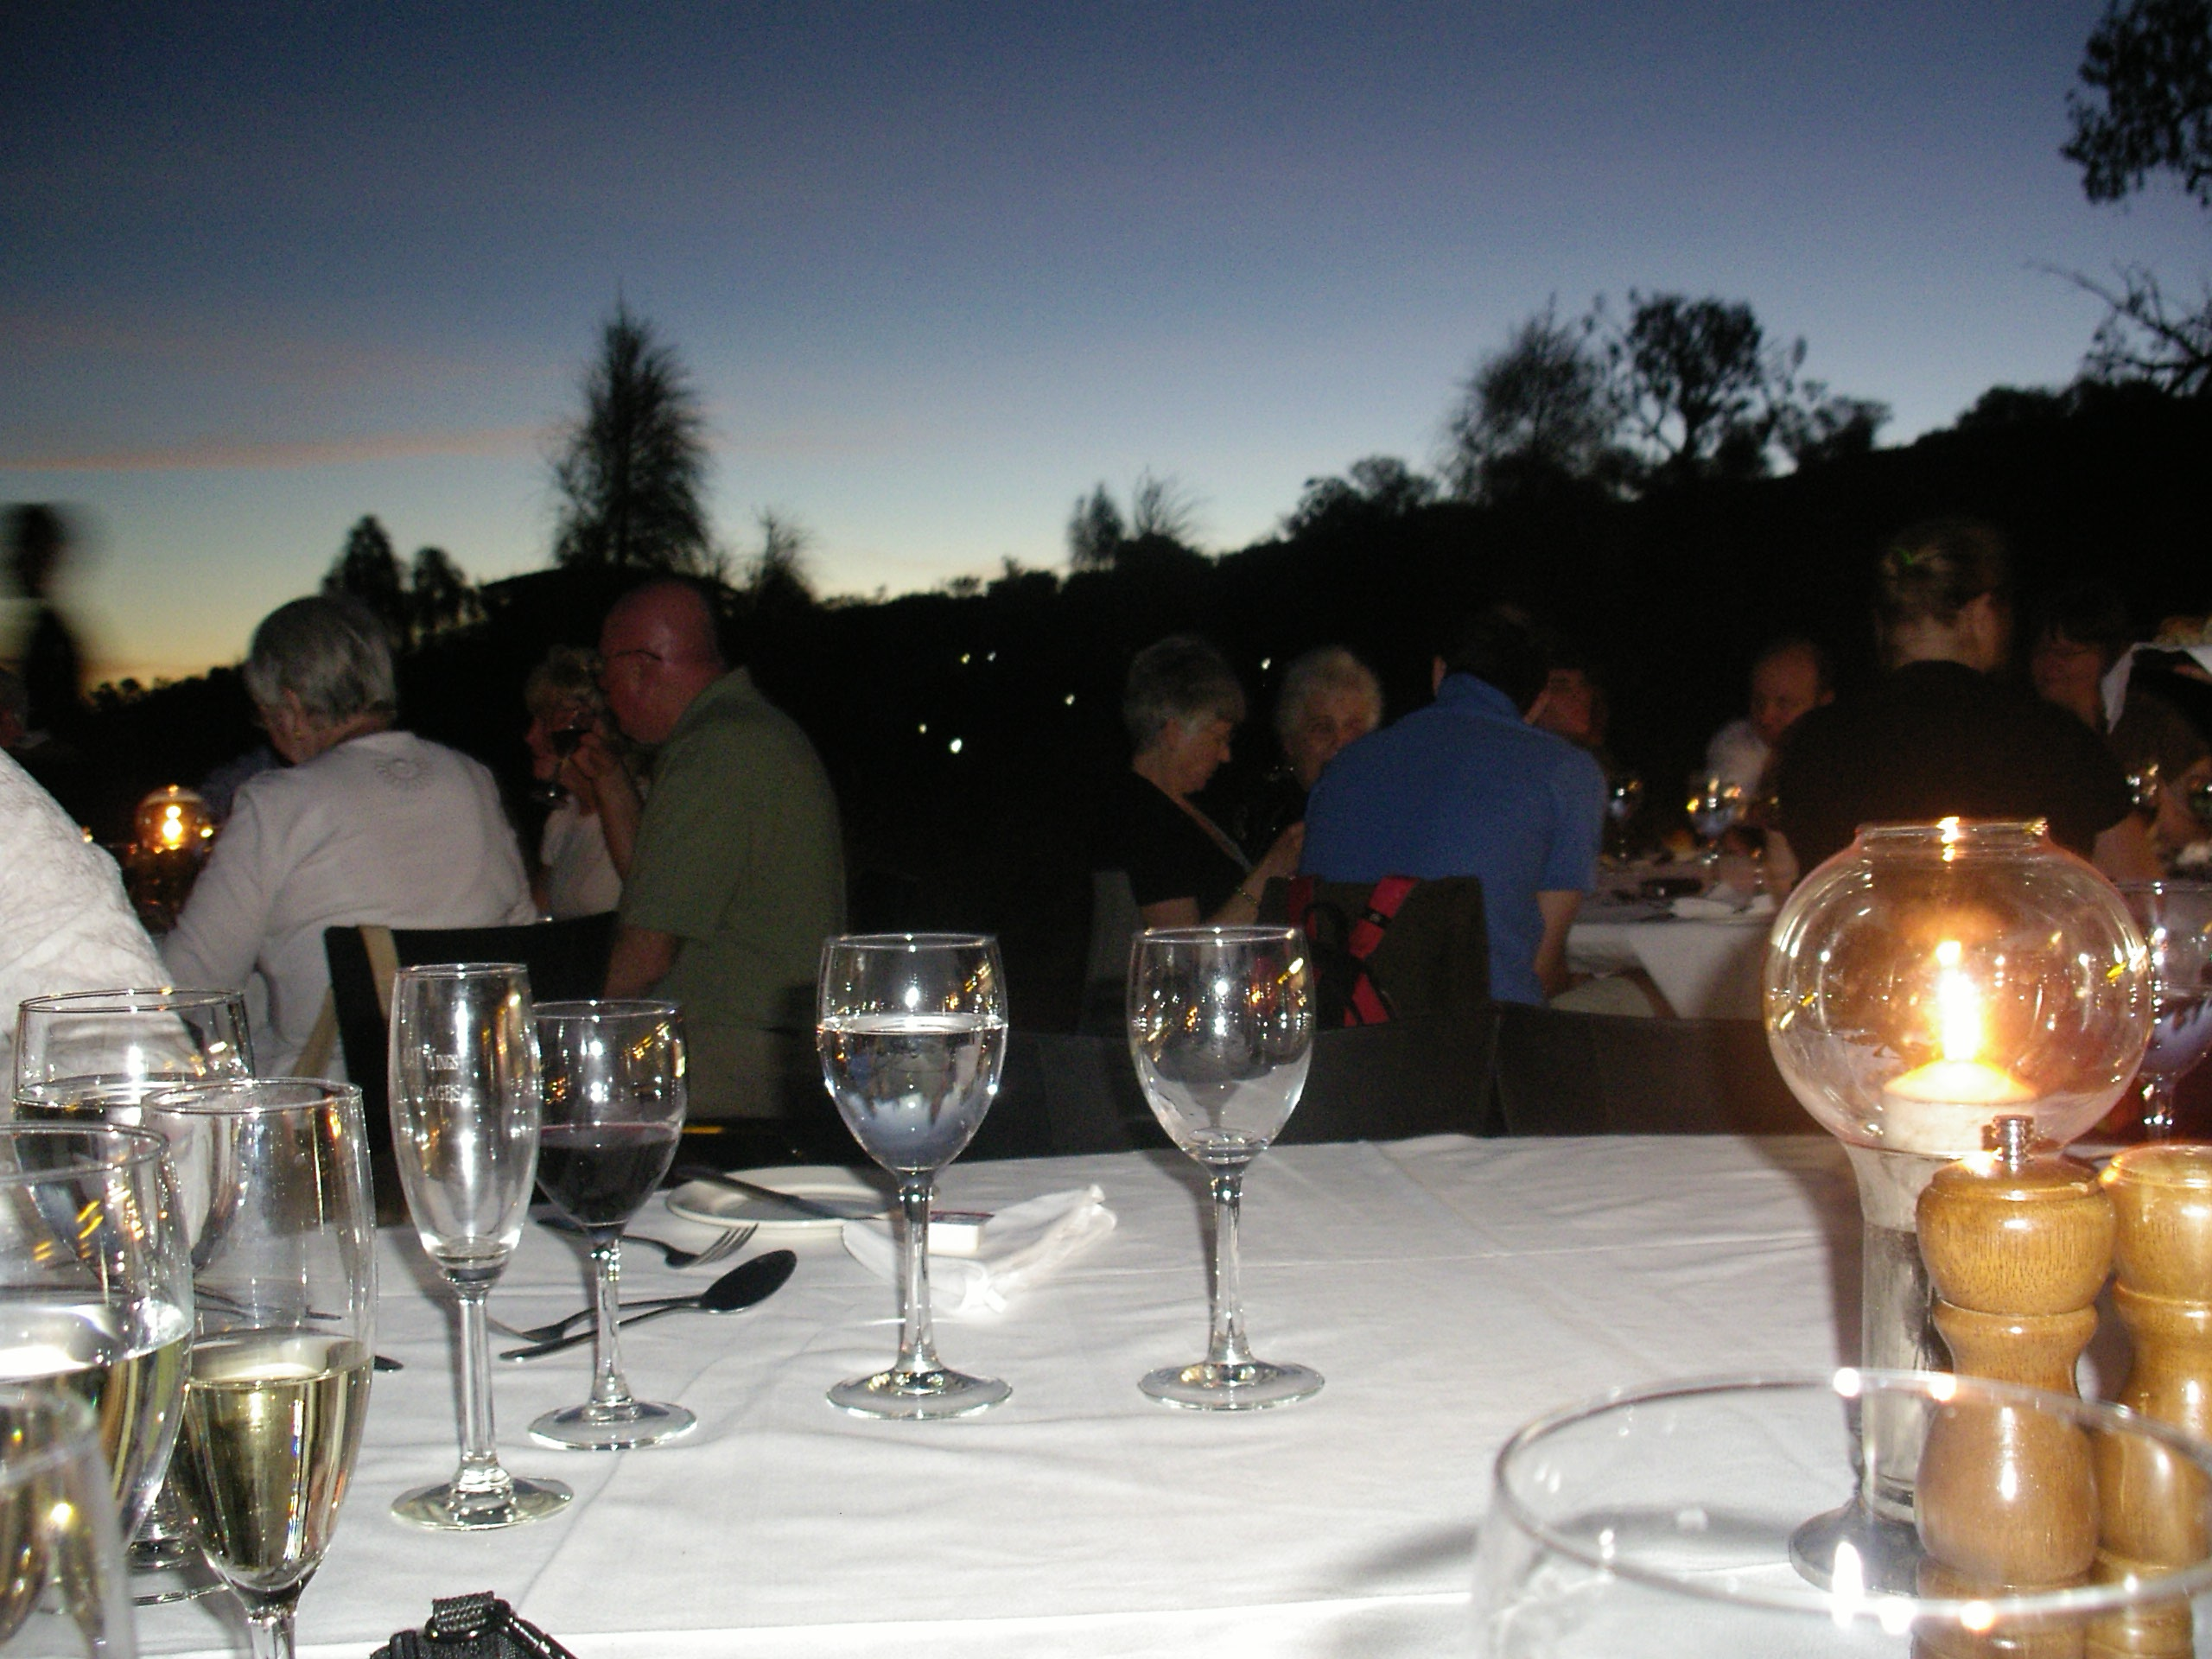 of what it was like eating dinner under the stars